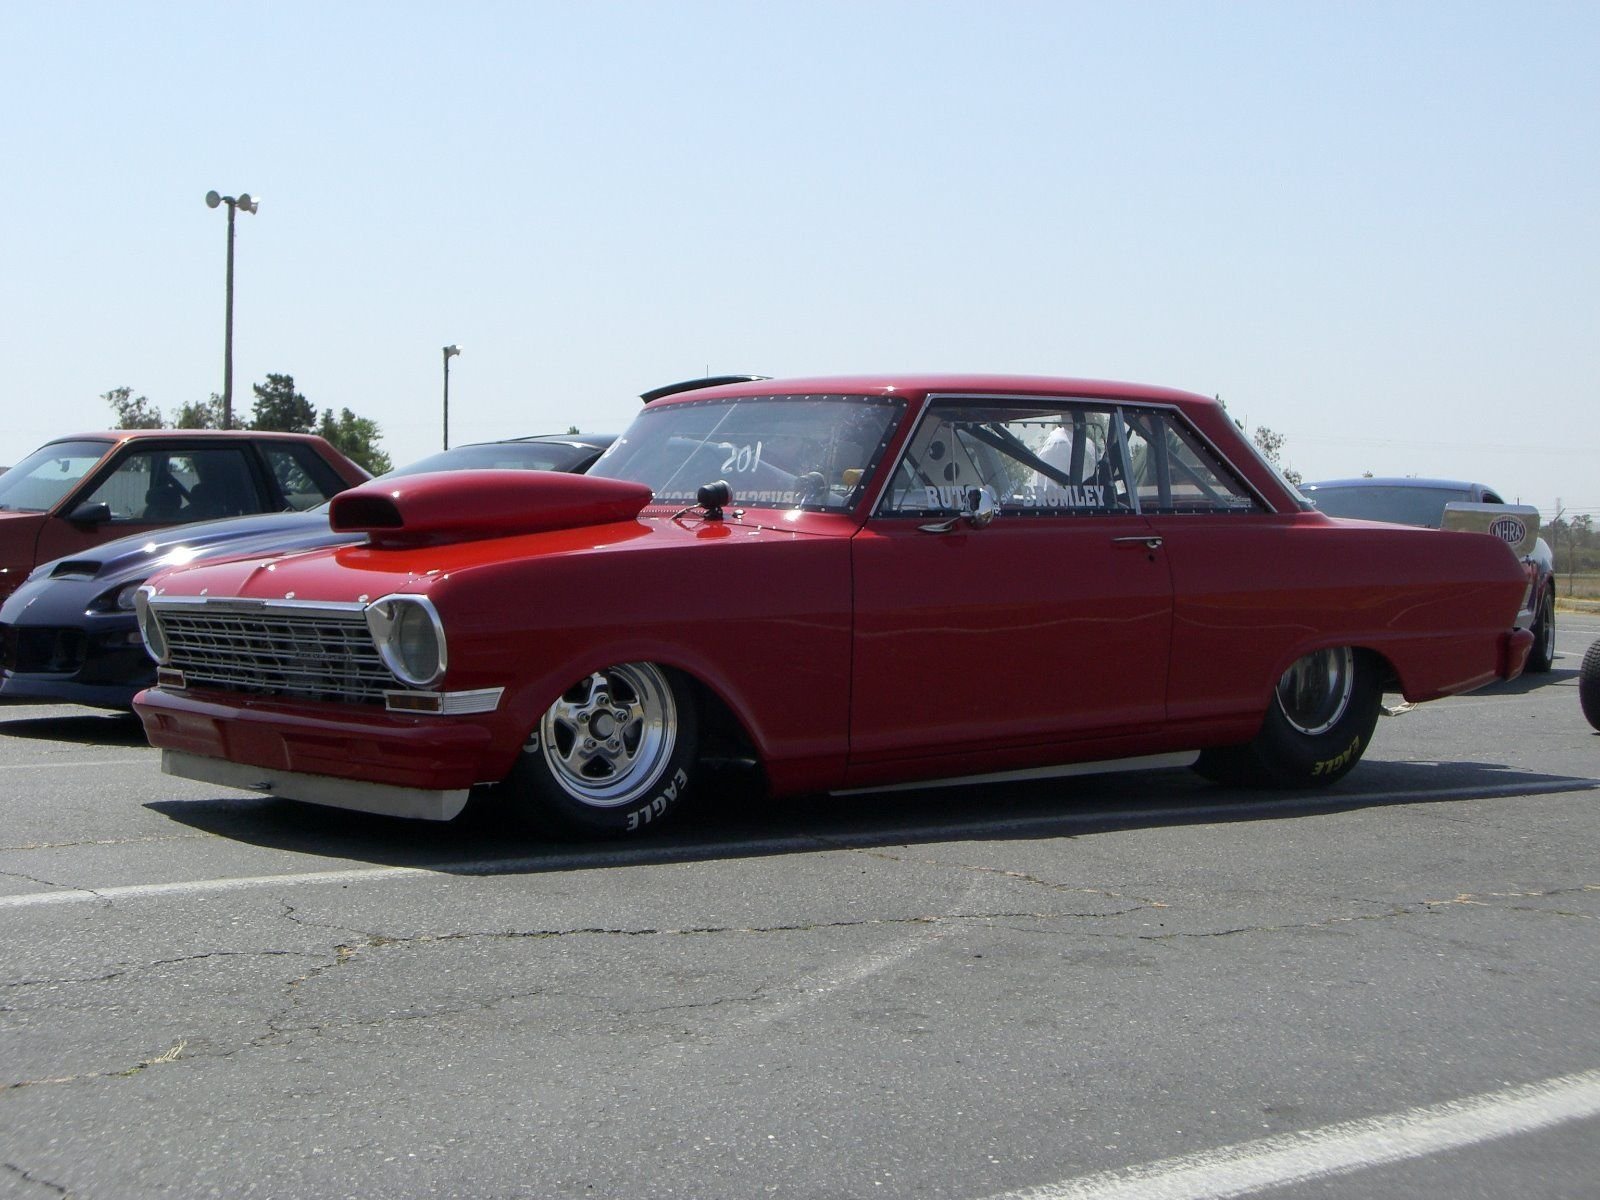 1967 Chevrolet Nova Chevy Ii Race Car Chevy Muscle Cars Chevrolet Nova Chevy Nova Wagon